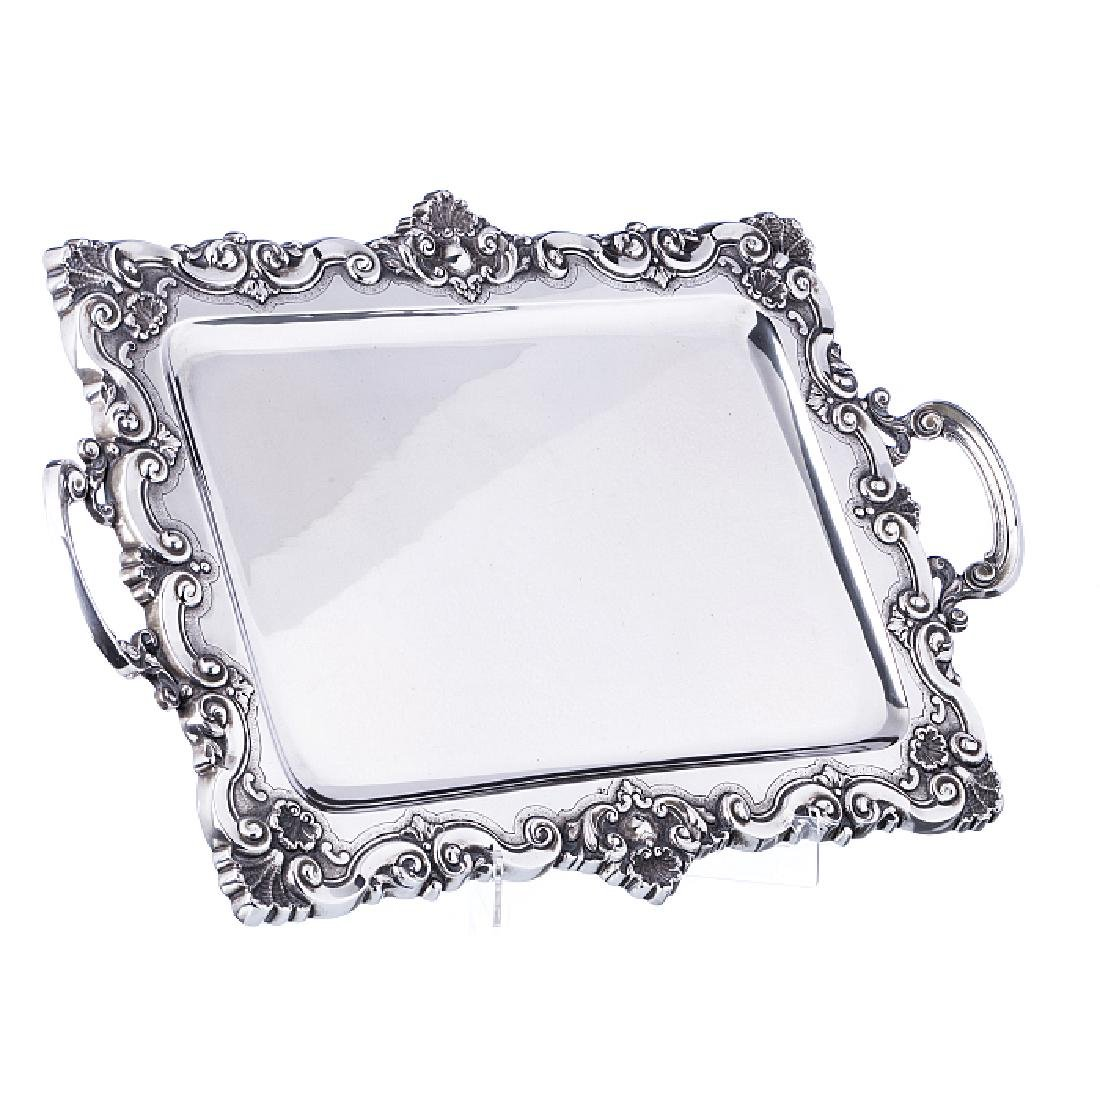 Tray in silver